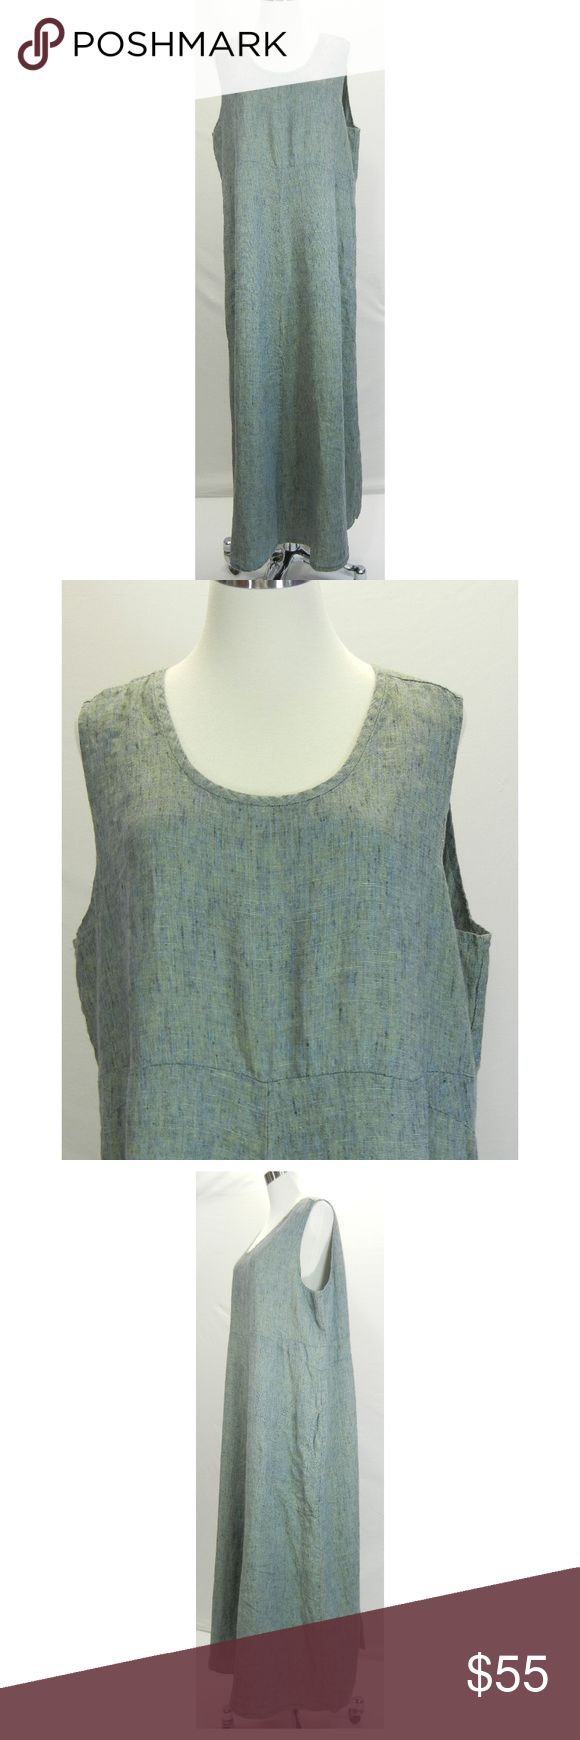 """FLAX Jeanne Engelhart Linen Long Jumper Dress Long Jumper dress from Flax by Jeanne Engelhart  Green, blue, black, yellow Sleeveless Scoop neck Pockets on each side Straight hem 100% linen Machine wash, dry low Tagged size:  1G 18/20 Excellent condition, no flaws  Please check measurements to determine fit All measurements are given in full Chest  48"""" Waist  46""""  Hips  53""""  Length  55"""" Flax by Jeanne Engelhart Dresses Maxi"""